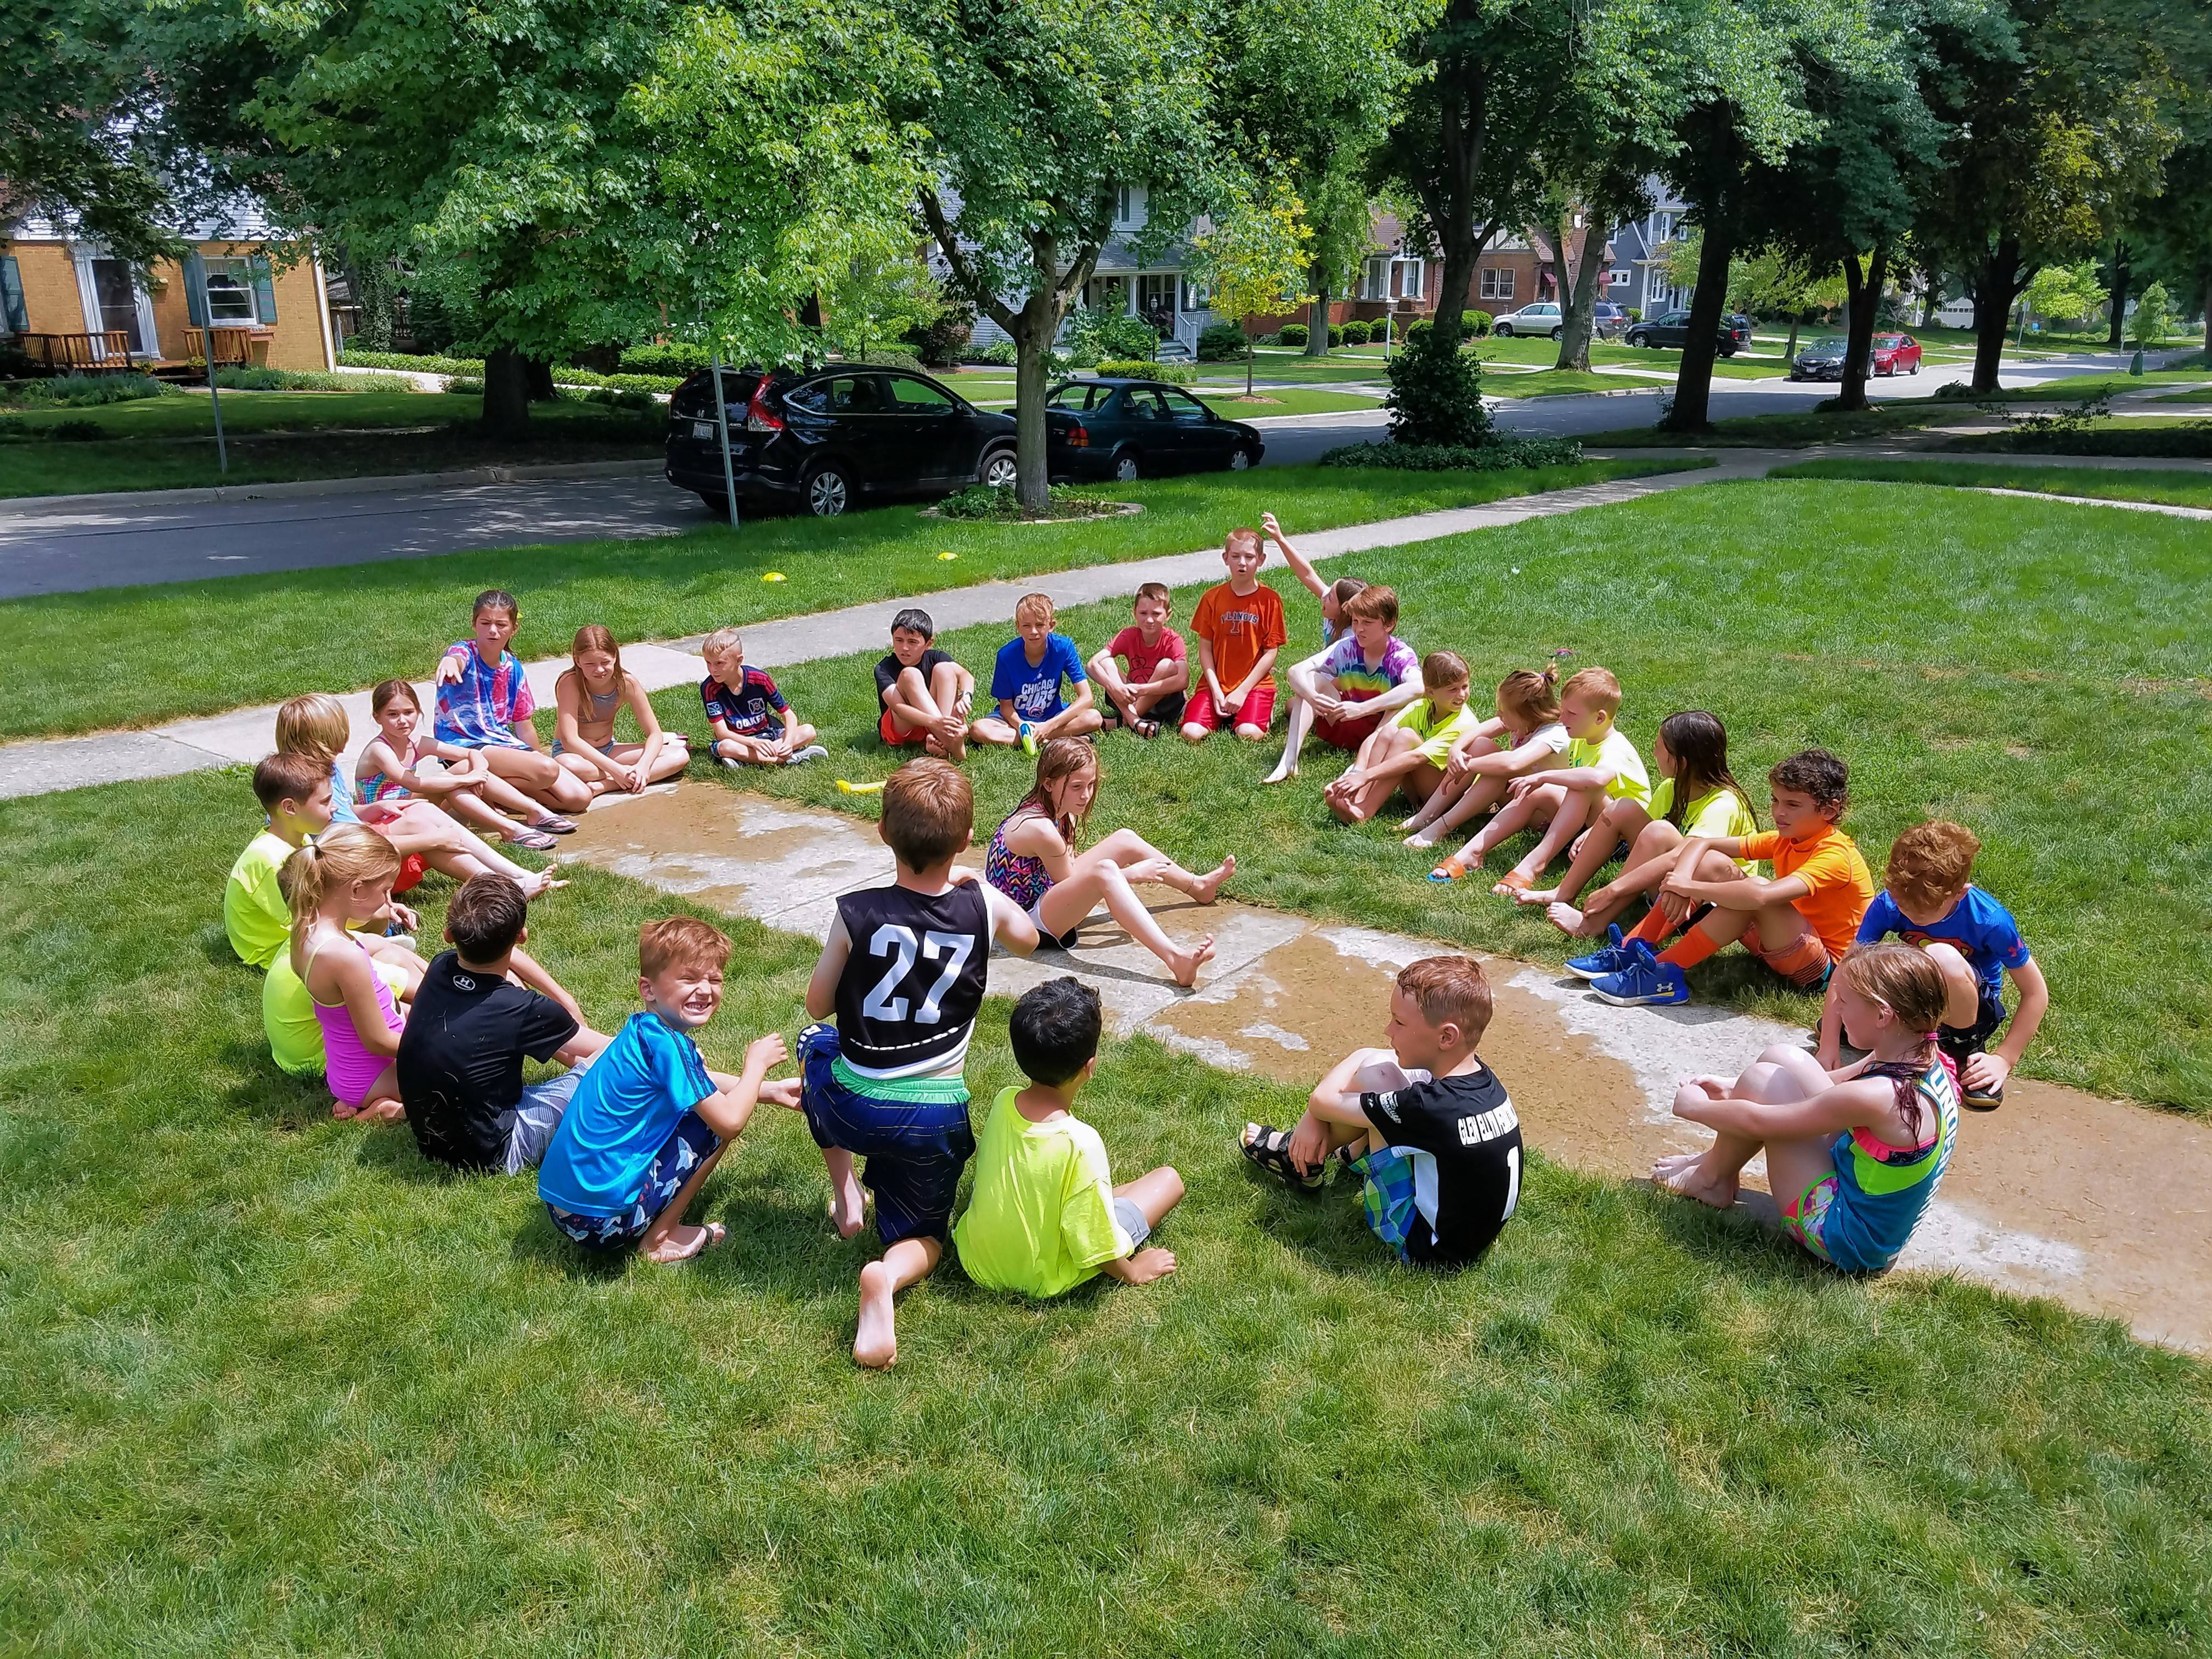 Each day of Exploding Brainiacs camp starts and ends with a game and even includes a Popsicle break.